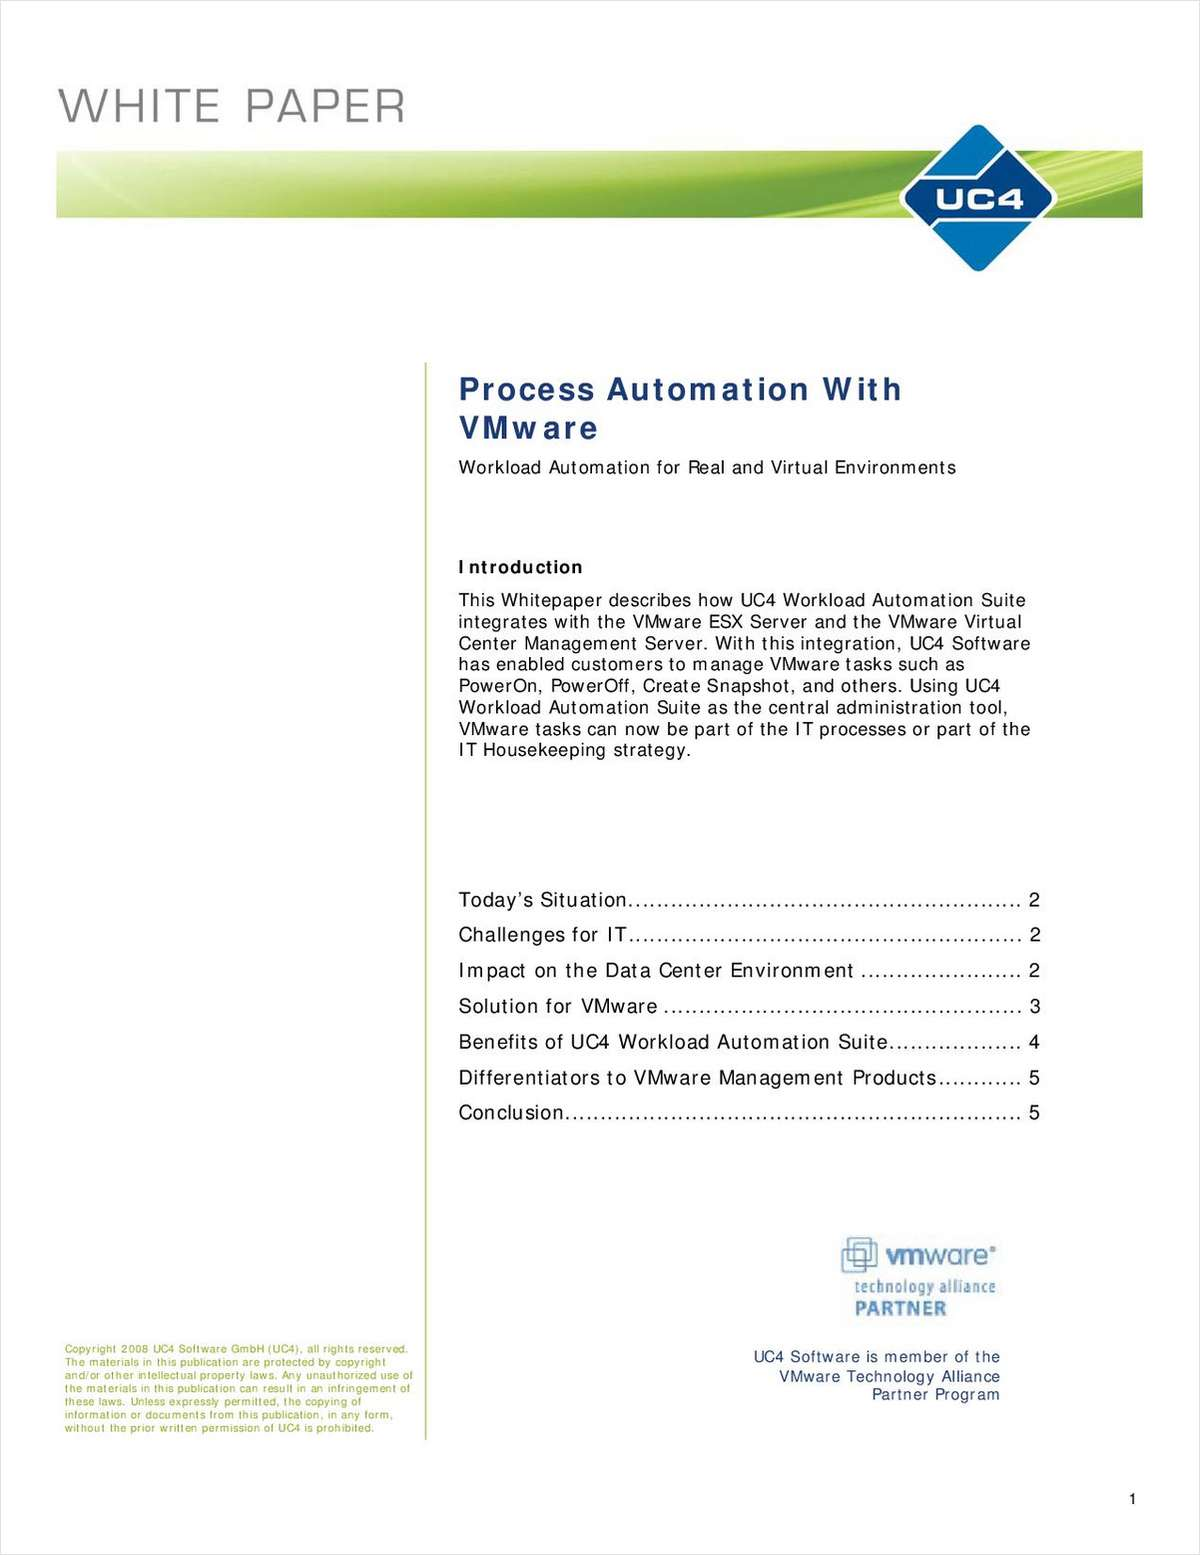 IT Process Automation and VMware - Workload Automation for Real and Virtual Environments